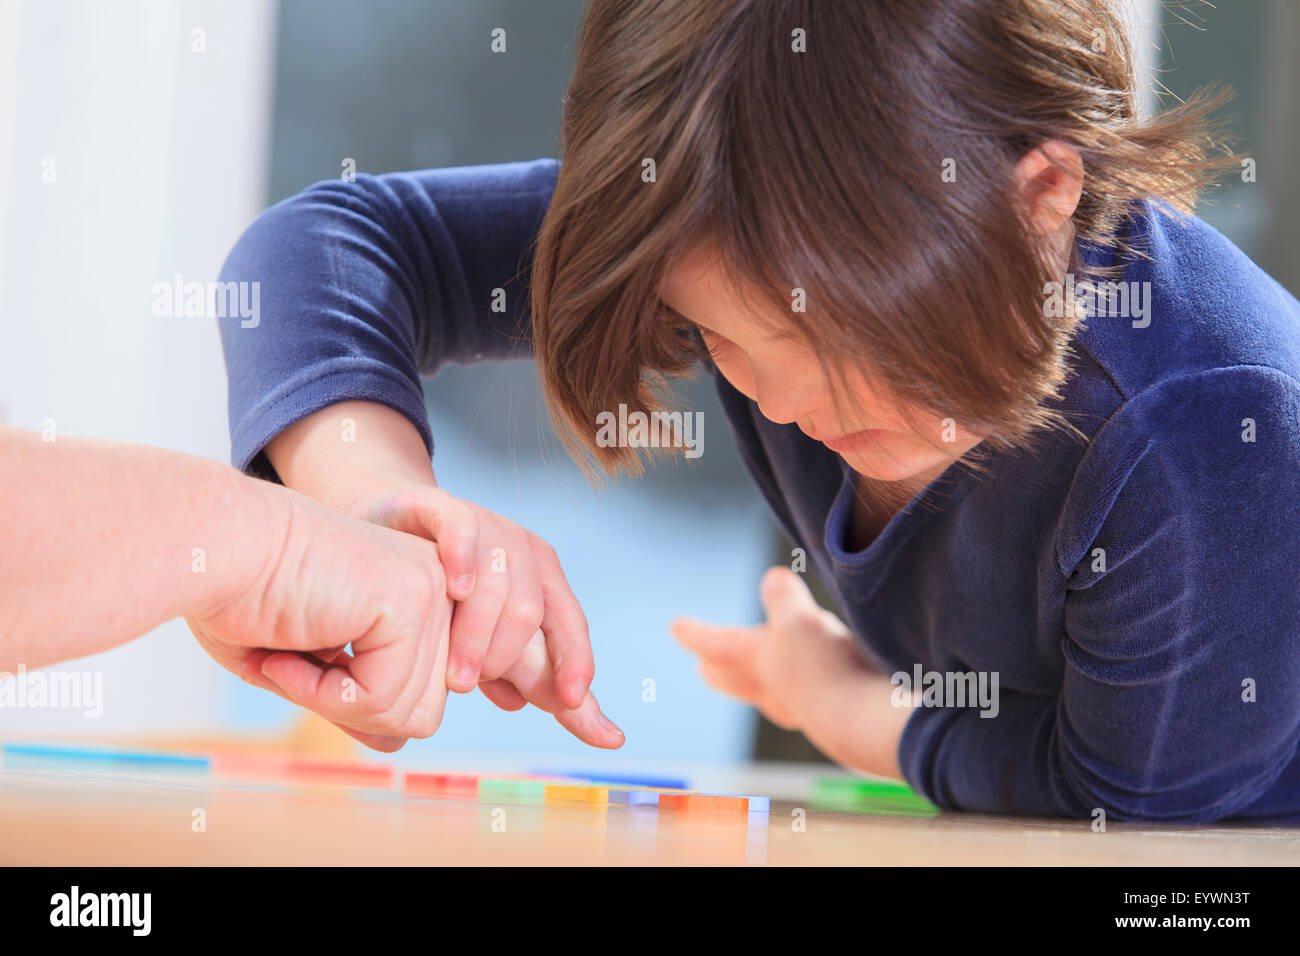 Little girl with Down Syndrome playing a learning game with her Mom - Stock Image